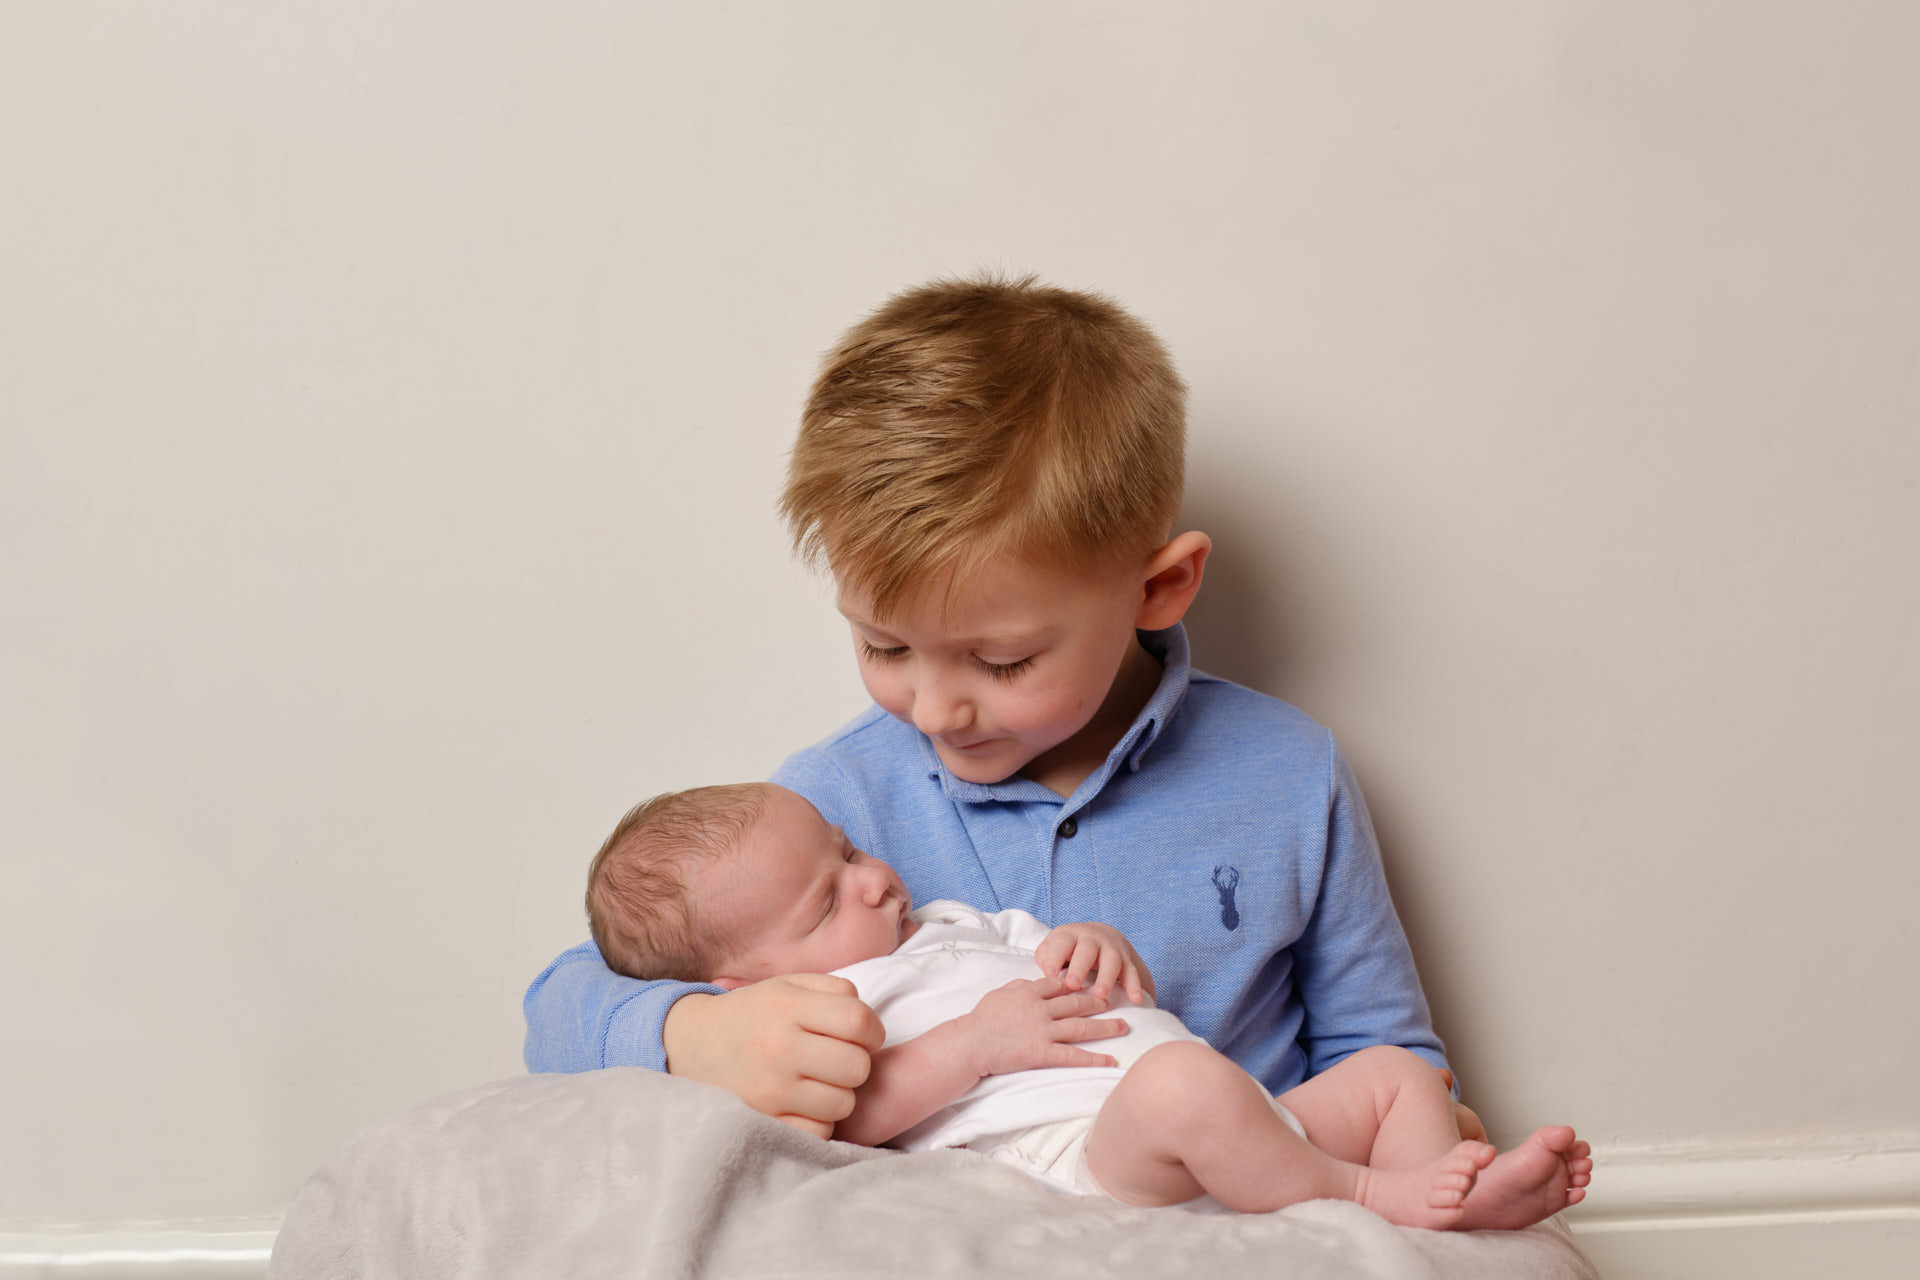 newborn-baby-with-brother